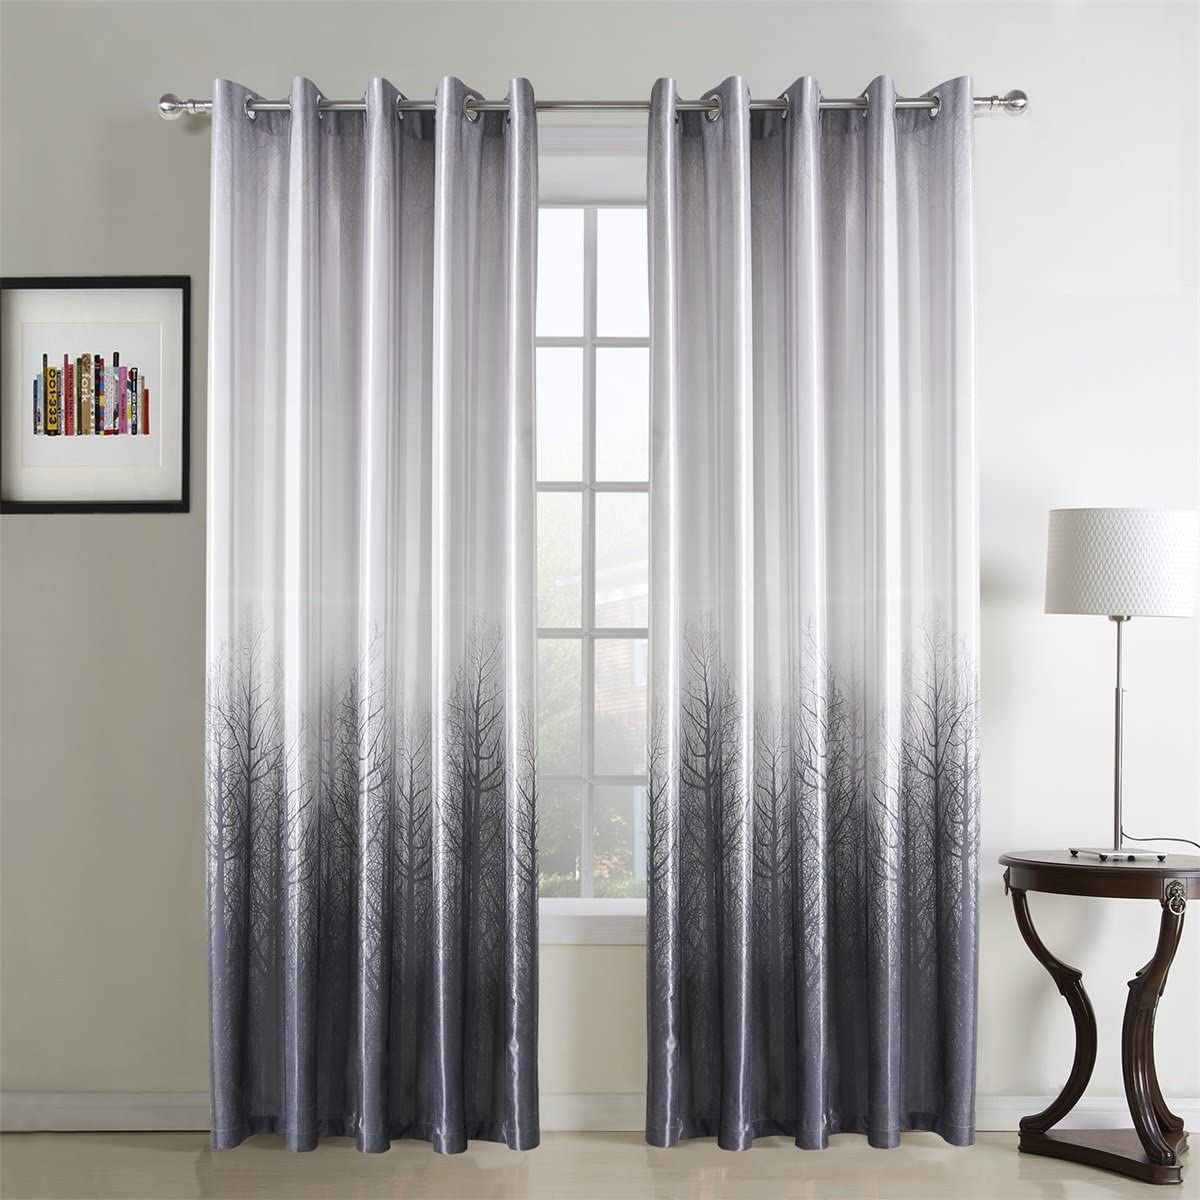 Dreaming Casa White Window Treatment Drape Curtains Black Tree Printed Pattern Grommet Top 102 Inches Long for Bedroom Living Room 2 Panels 72 W x 102 L